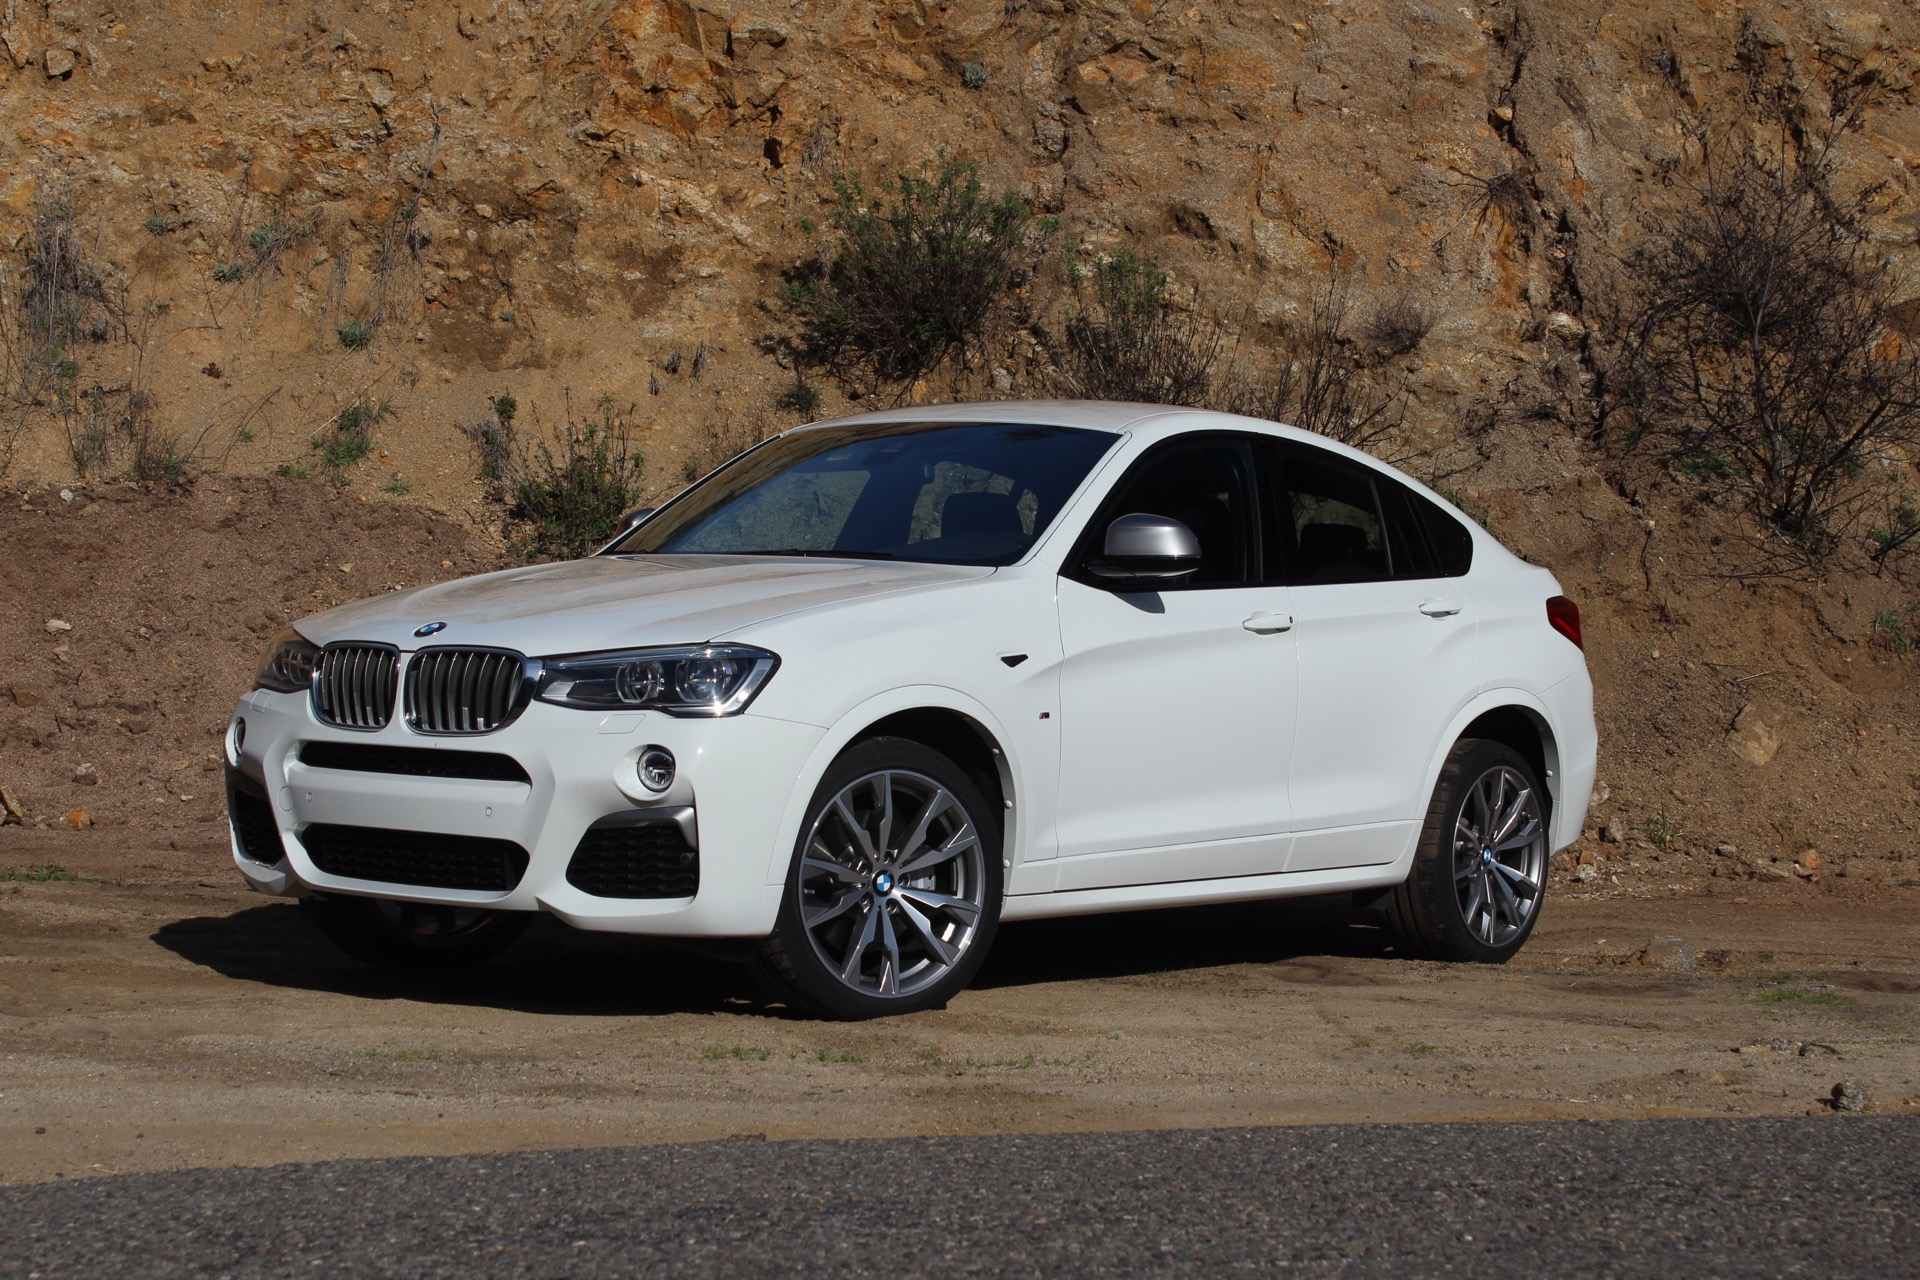 2016 bmw x4 m40i first drive review. Black Bedroom Furniture Sets. Home Design Ideas